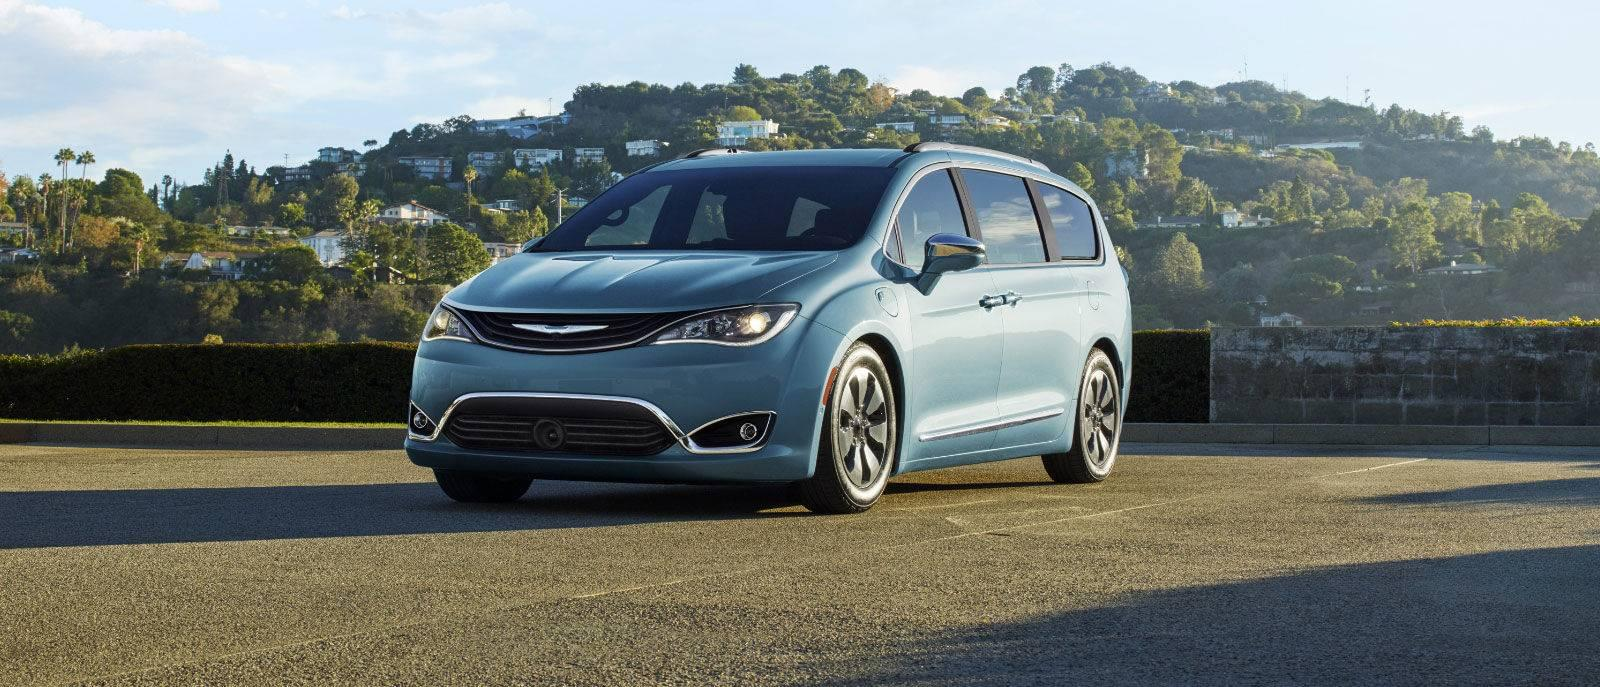 hight resolution of 2017 chrysler pacifica blue exterior